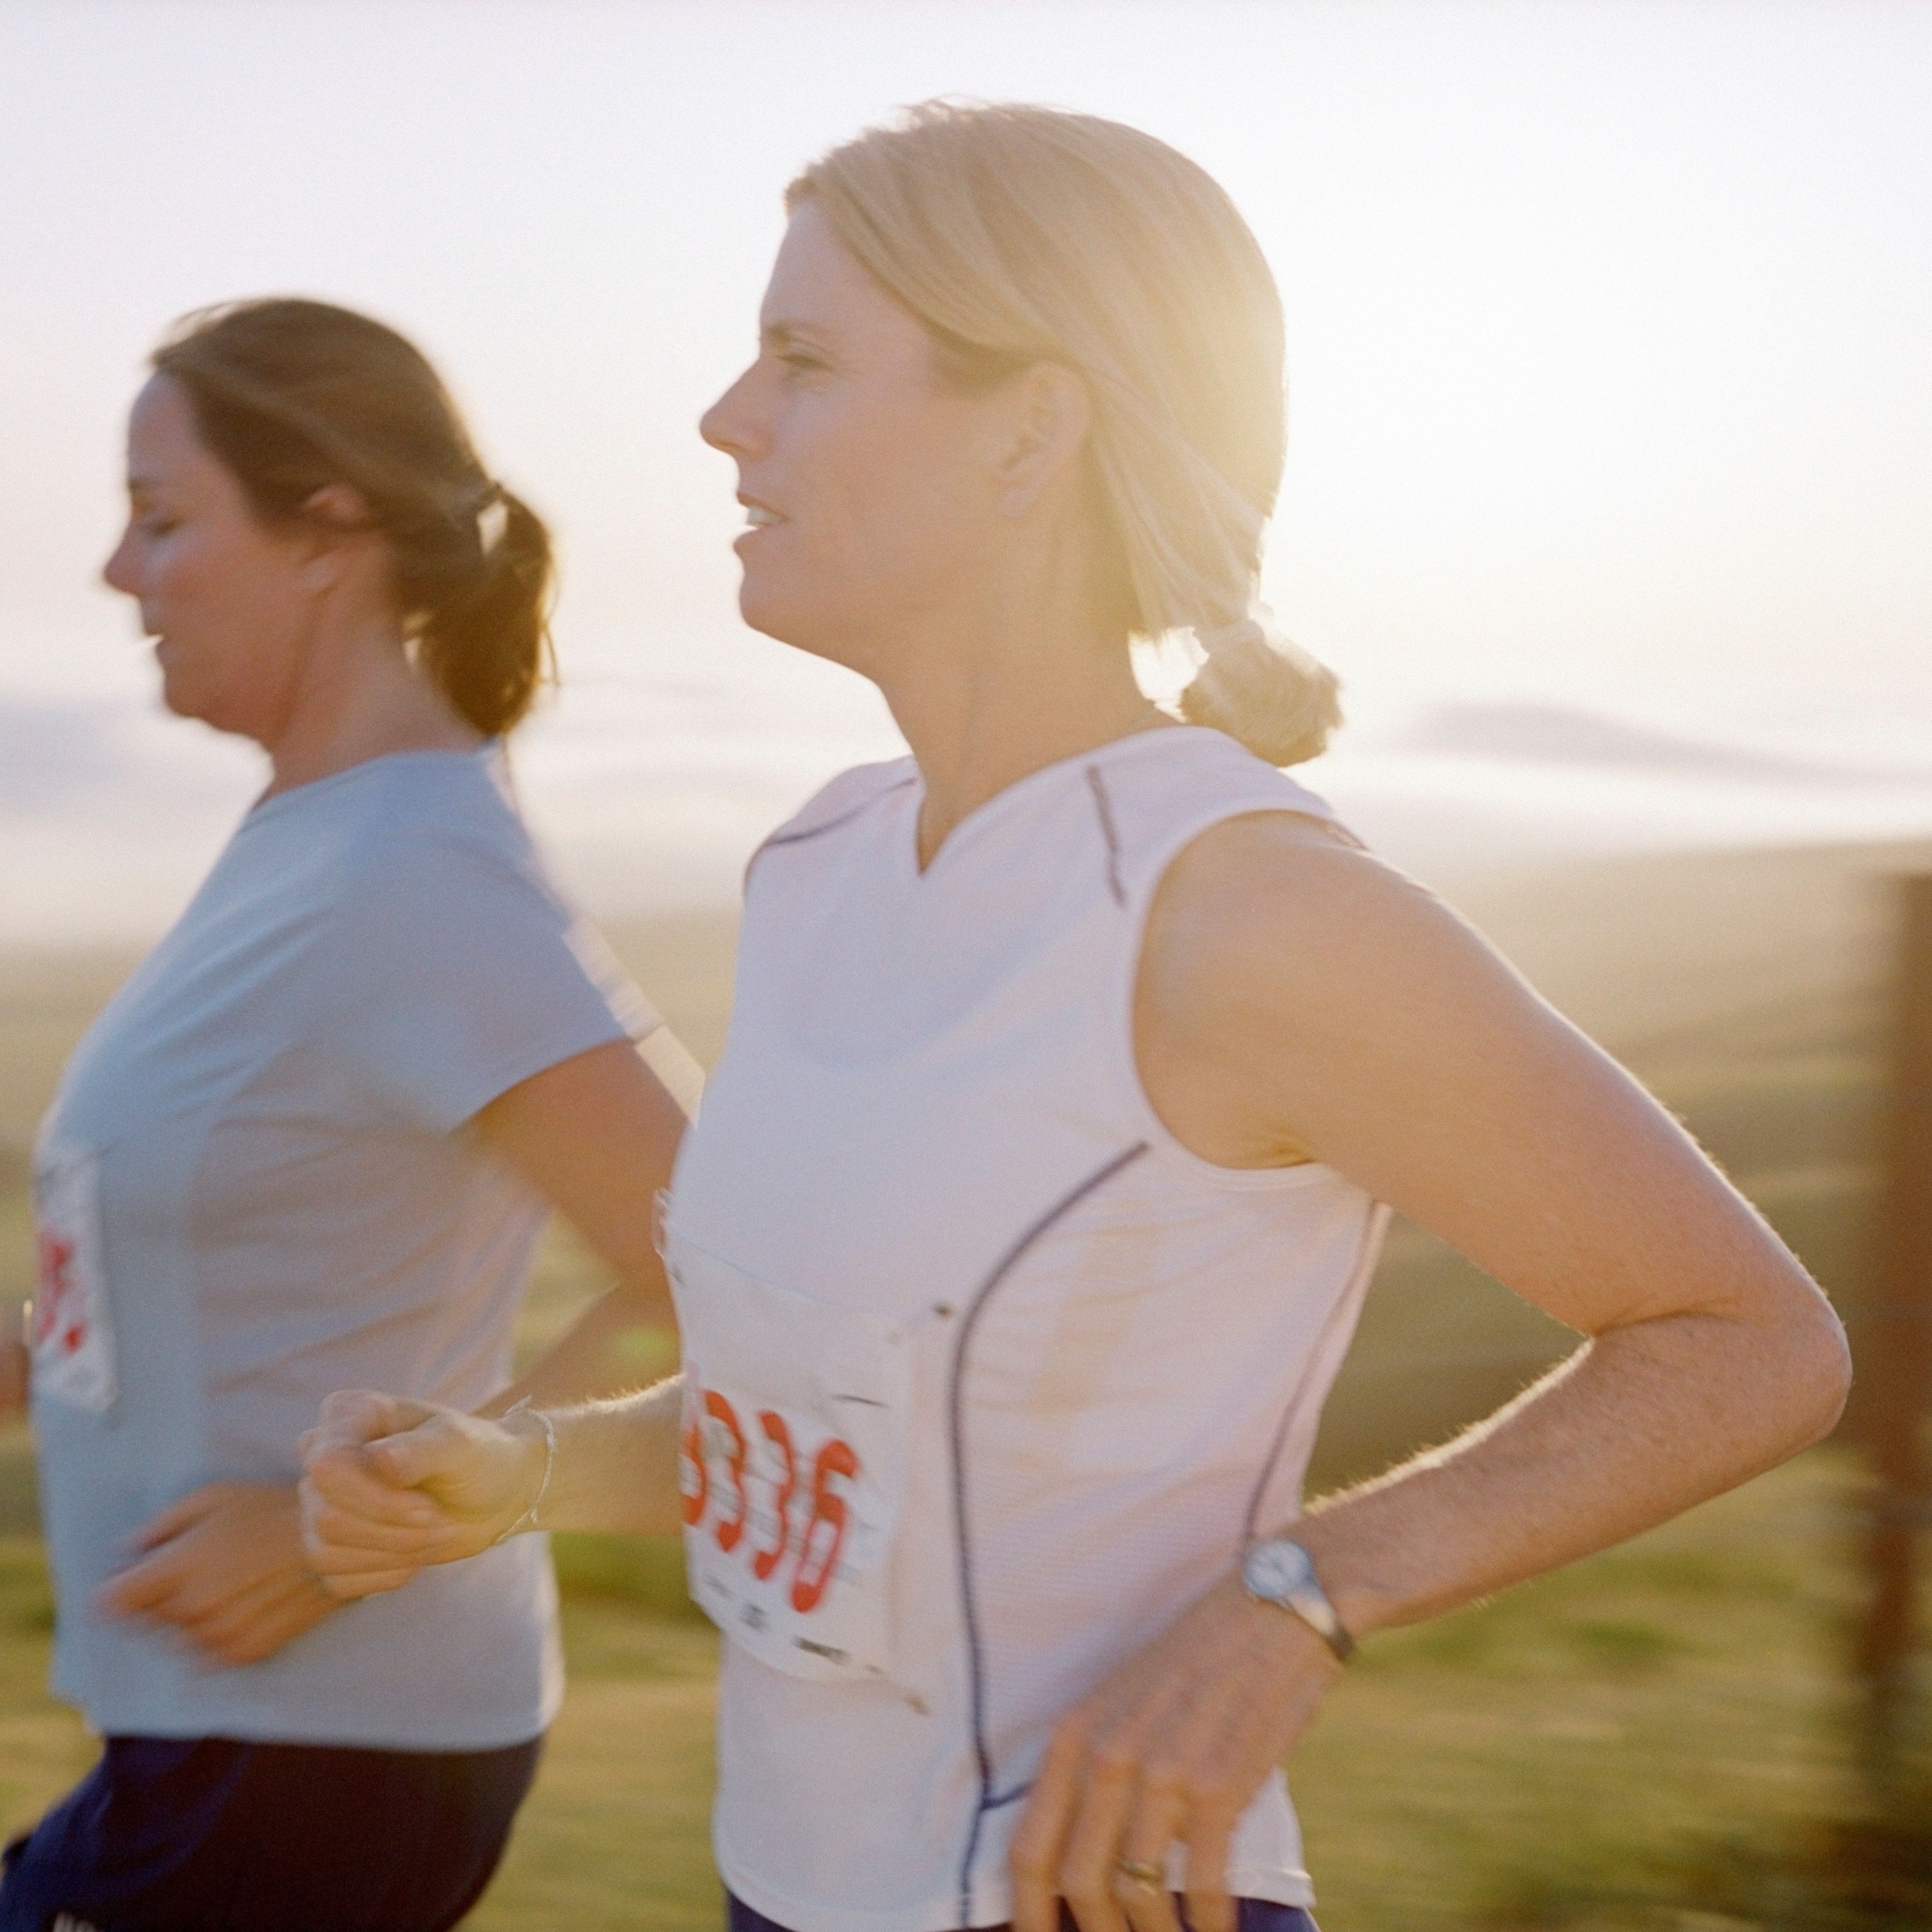 8 Simple Tips to Improve Your Endurance While Running